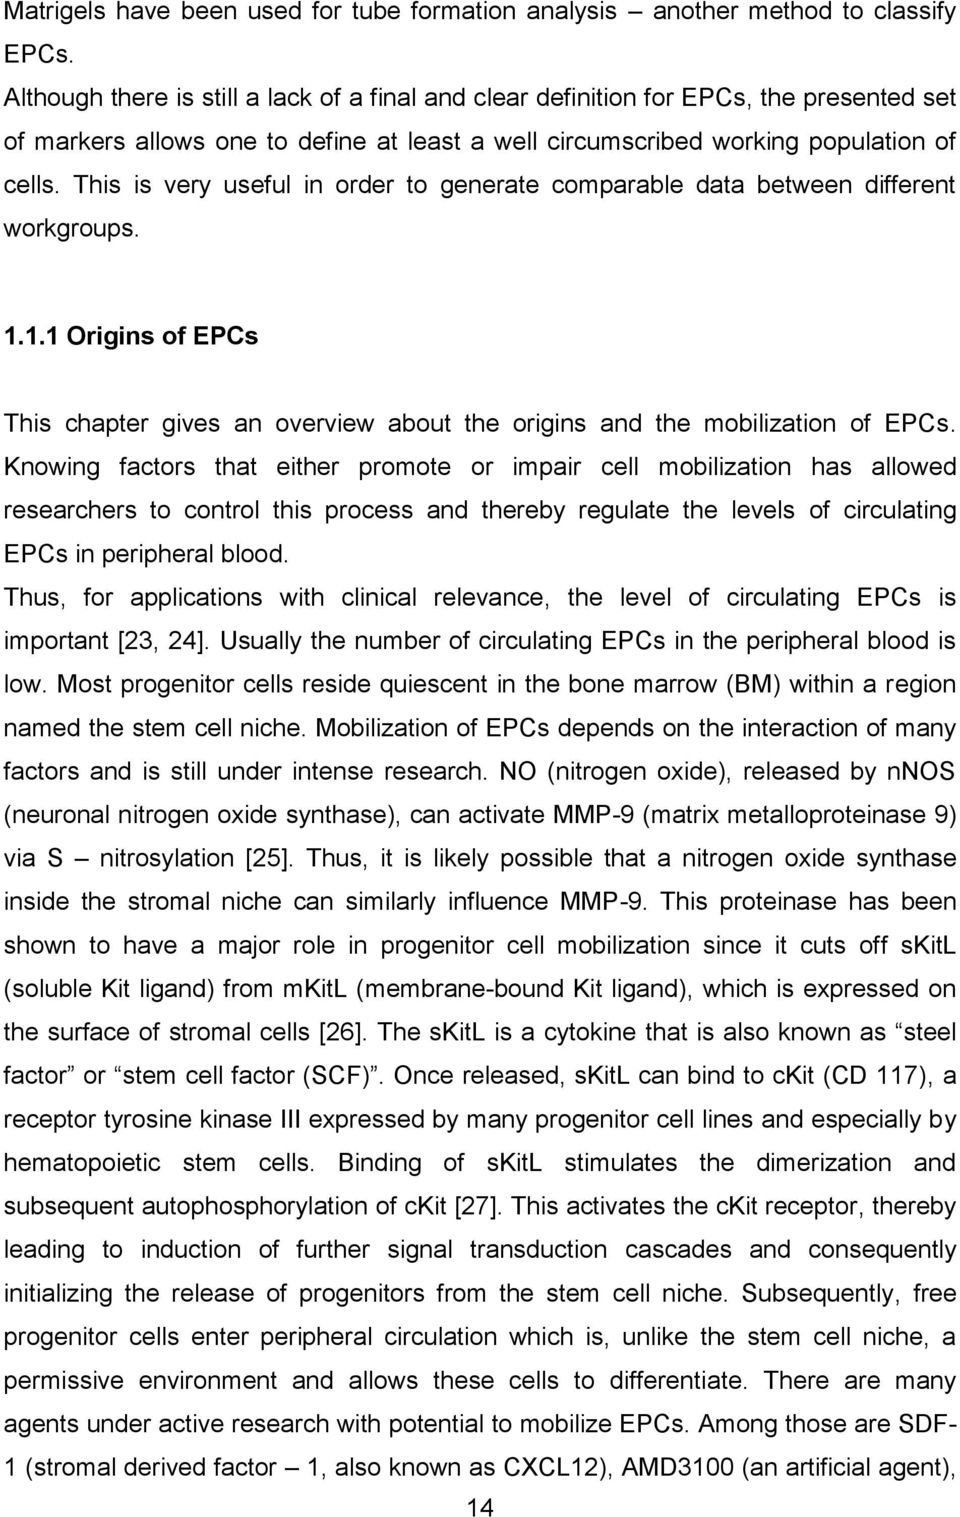 This is very useful in order to generate comparable data between different workgroups. 1.1.1 Origins of EPCs This chapter gives an overview about the origins and the mobilization of EPCs.